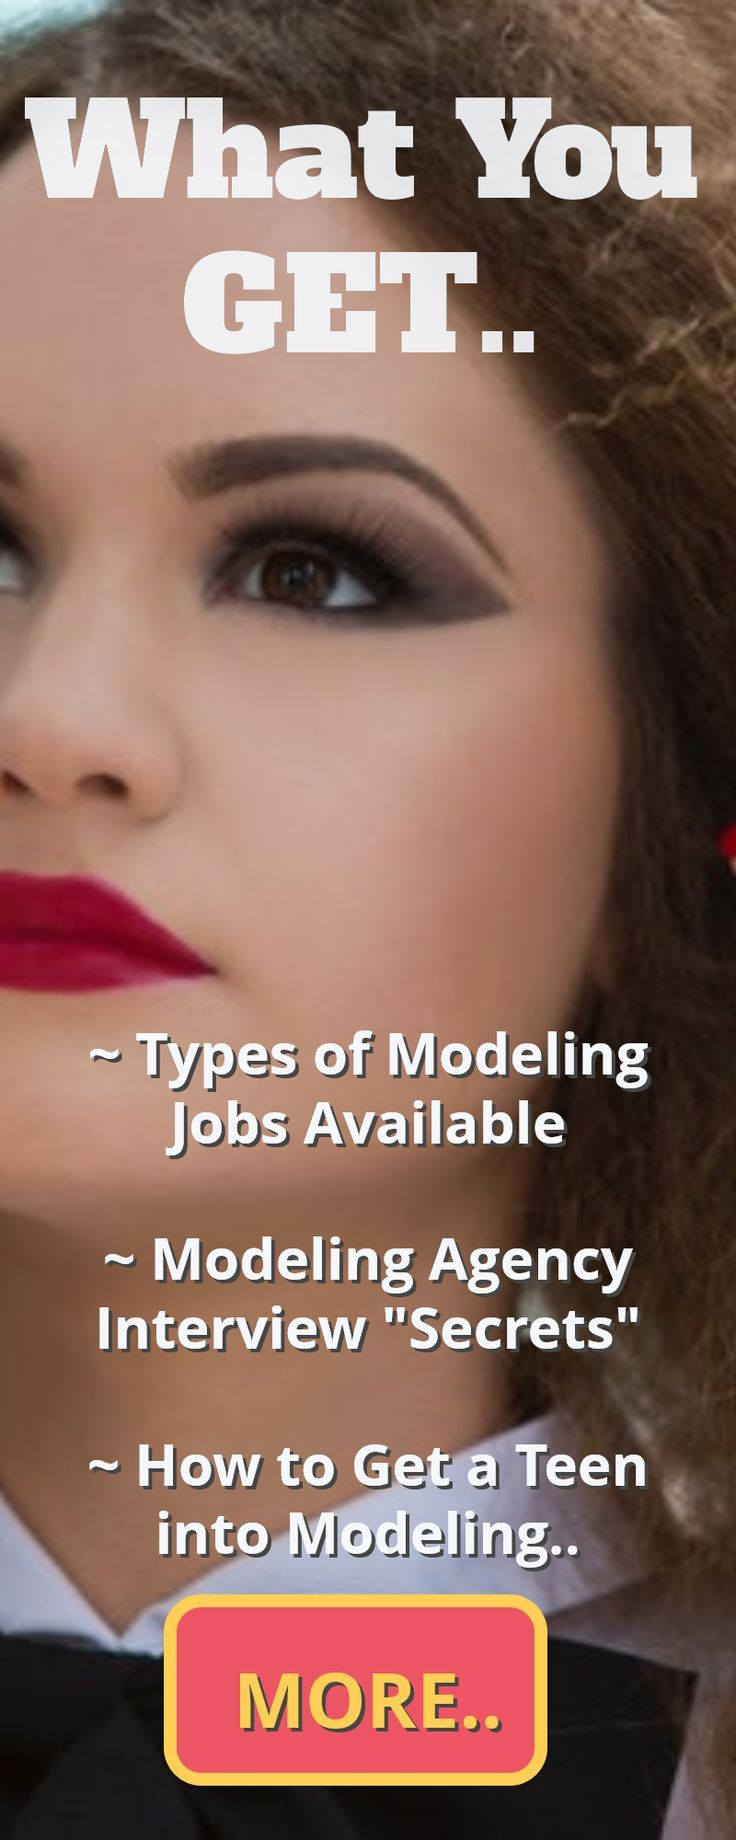 Becoming a teen model topic